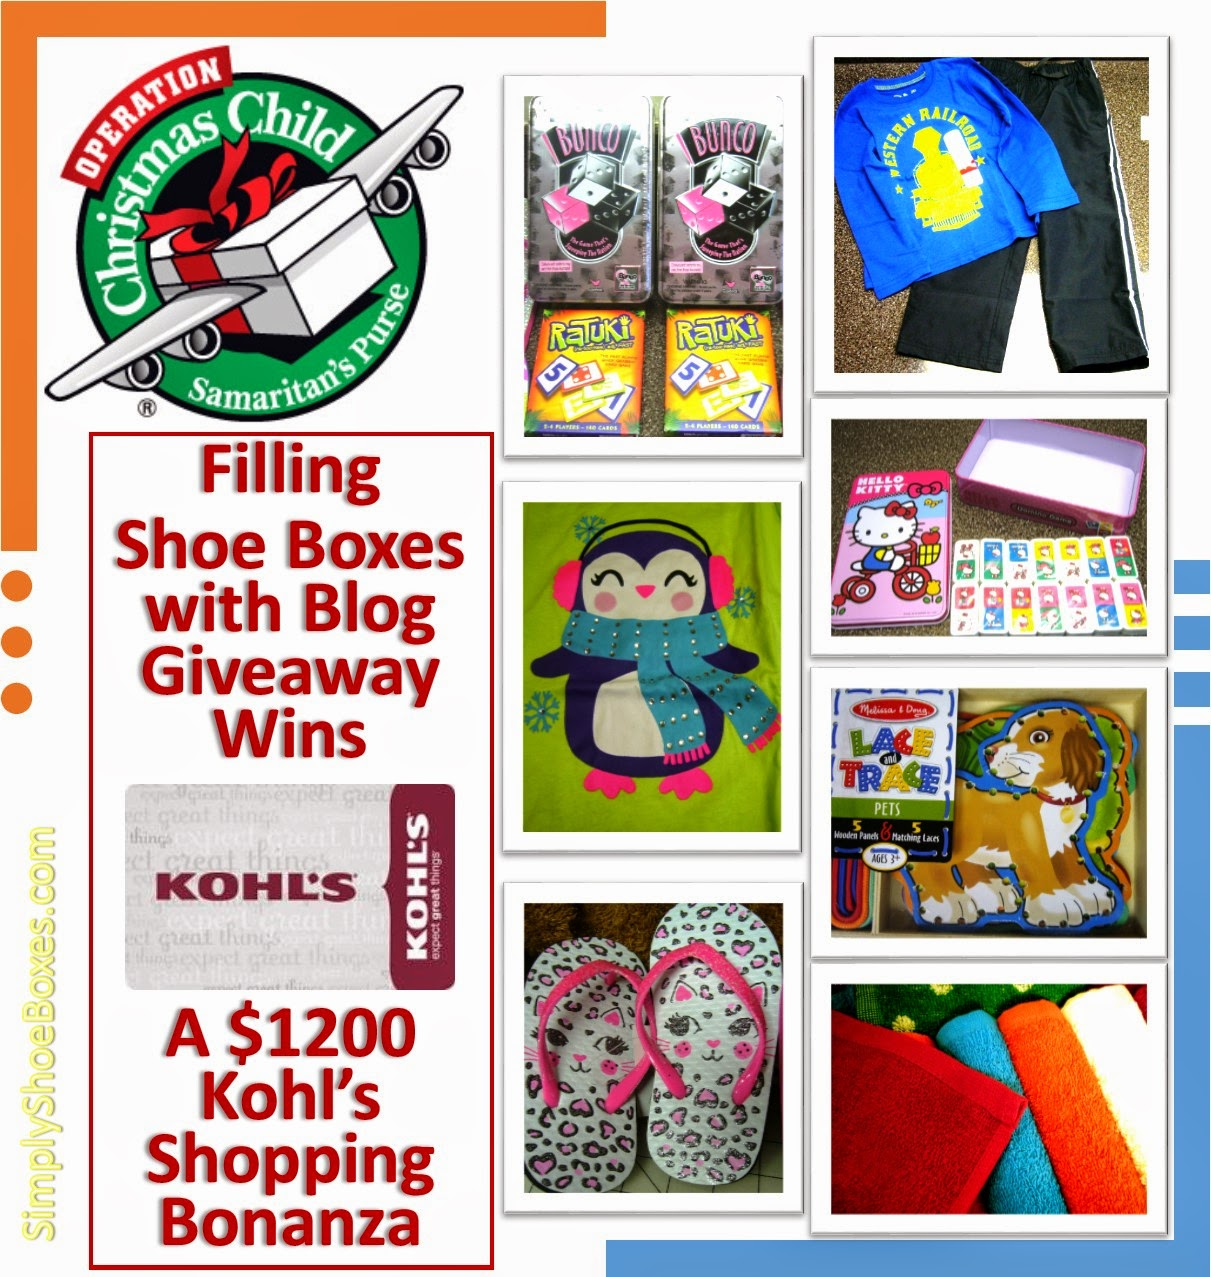 Filling Operation Christmas Child shoe boxes with blog giveaway wins